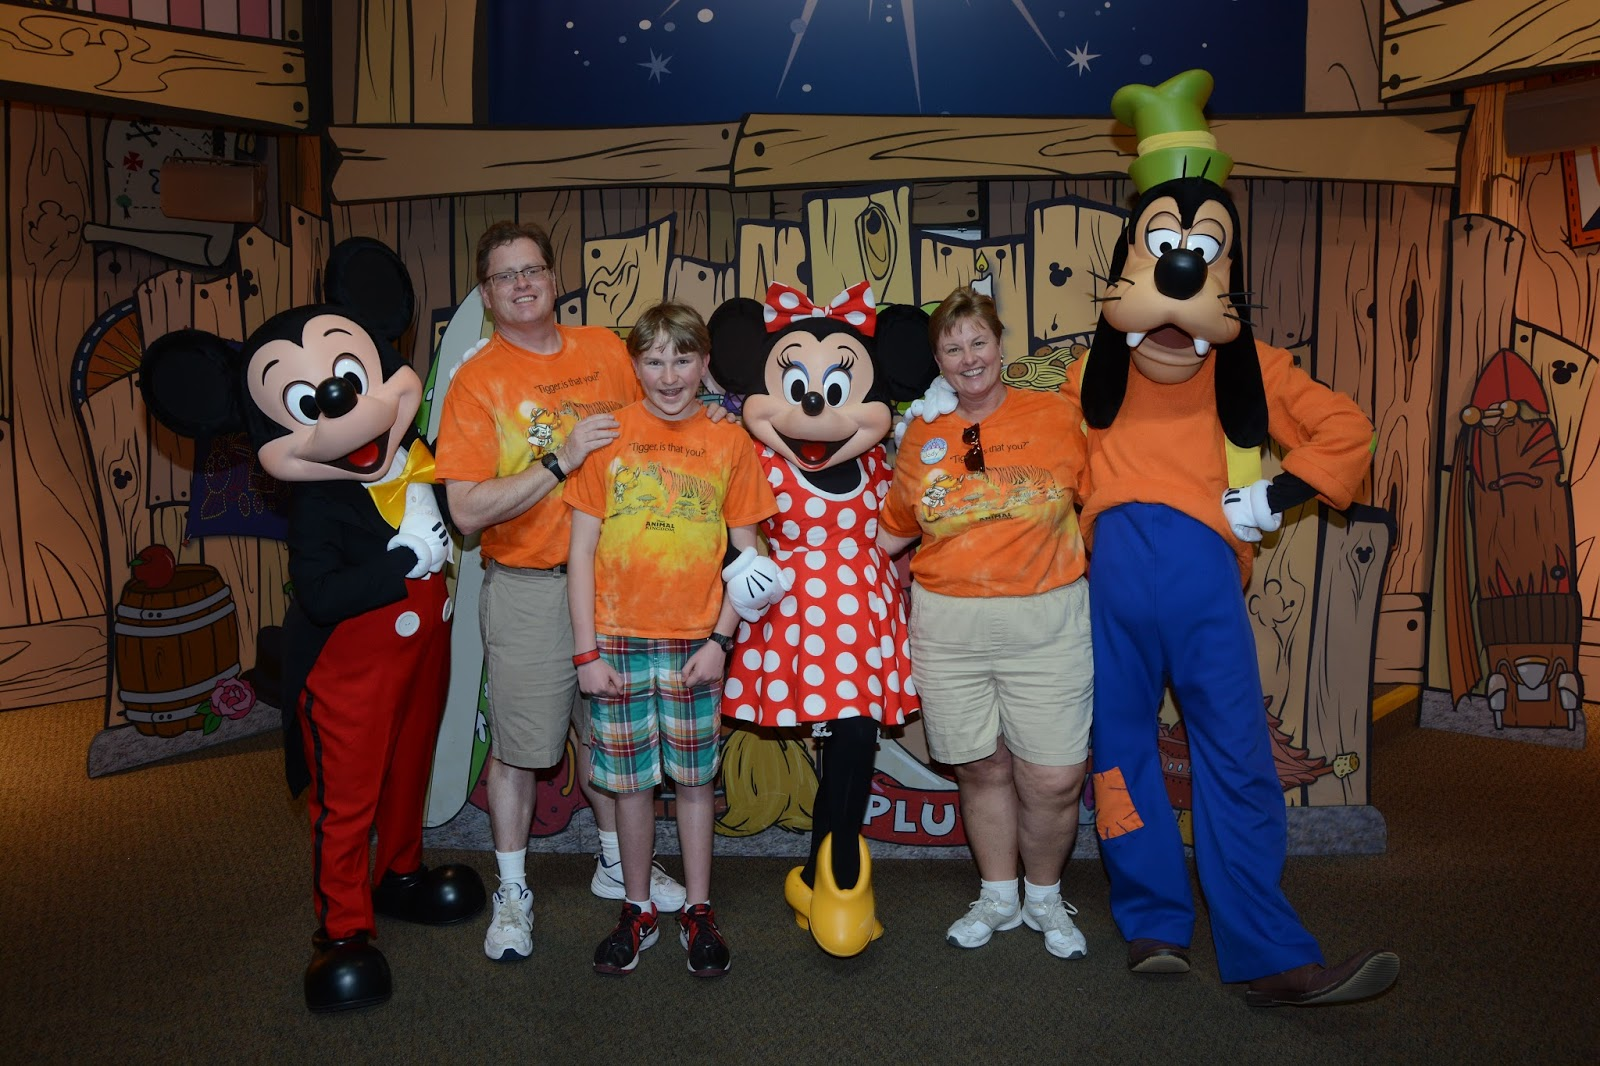 Williams family perks of traveling with a disney rewards visa perks of traveling with a disney rewards visa two character meet and greets at the walt disney world resort kristyandbryce Choice Image